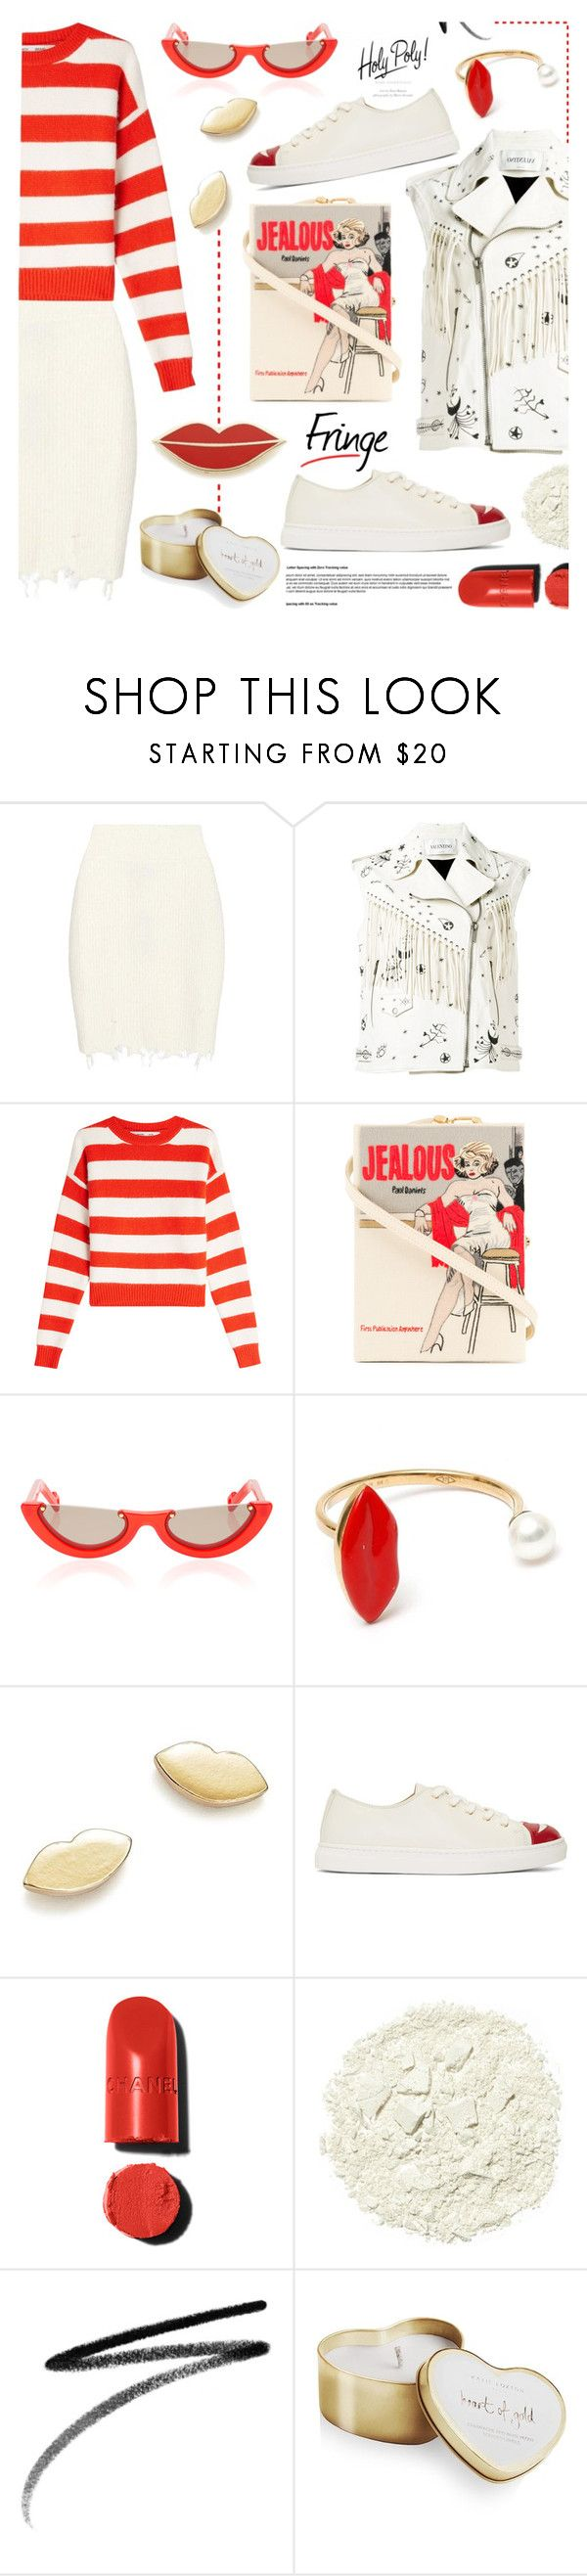 """""""Shimmy Shimmy: Fringe"""" by tinkabella222 ❤ liked on Polyvore featuring Yeezy by Kanye West, Valentino, Diane Von Furstenberg, Olympia Le-Tan, Delfina Delettrez, Bing Bang, Charlotte Olympia, Illamasqua, Clé de Peau Beauté and Katie Loxton"""